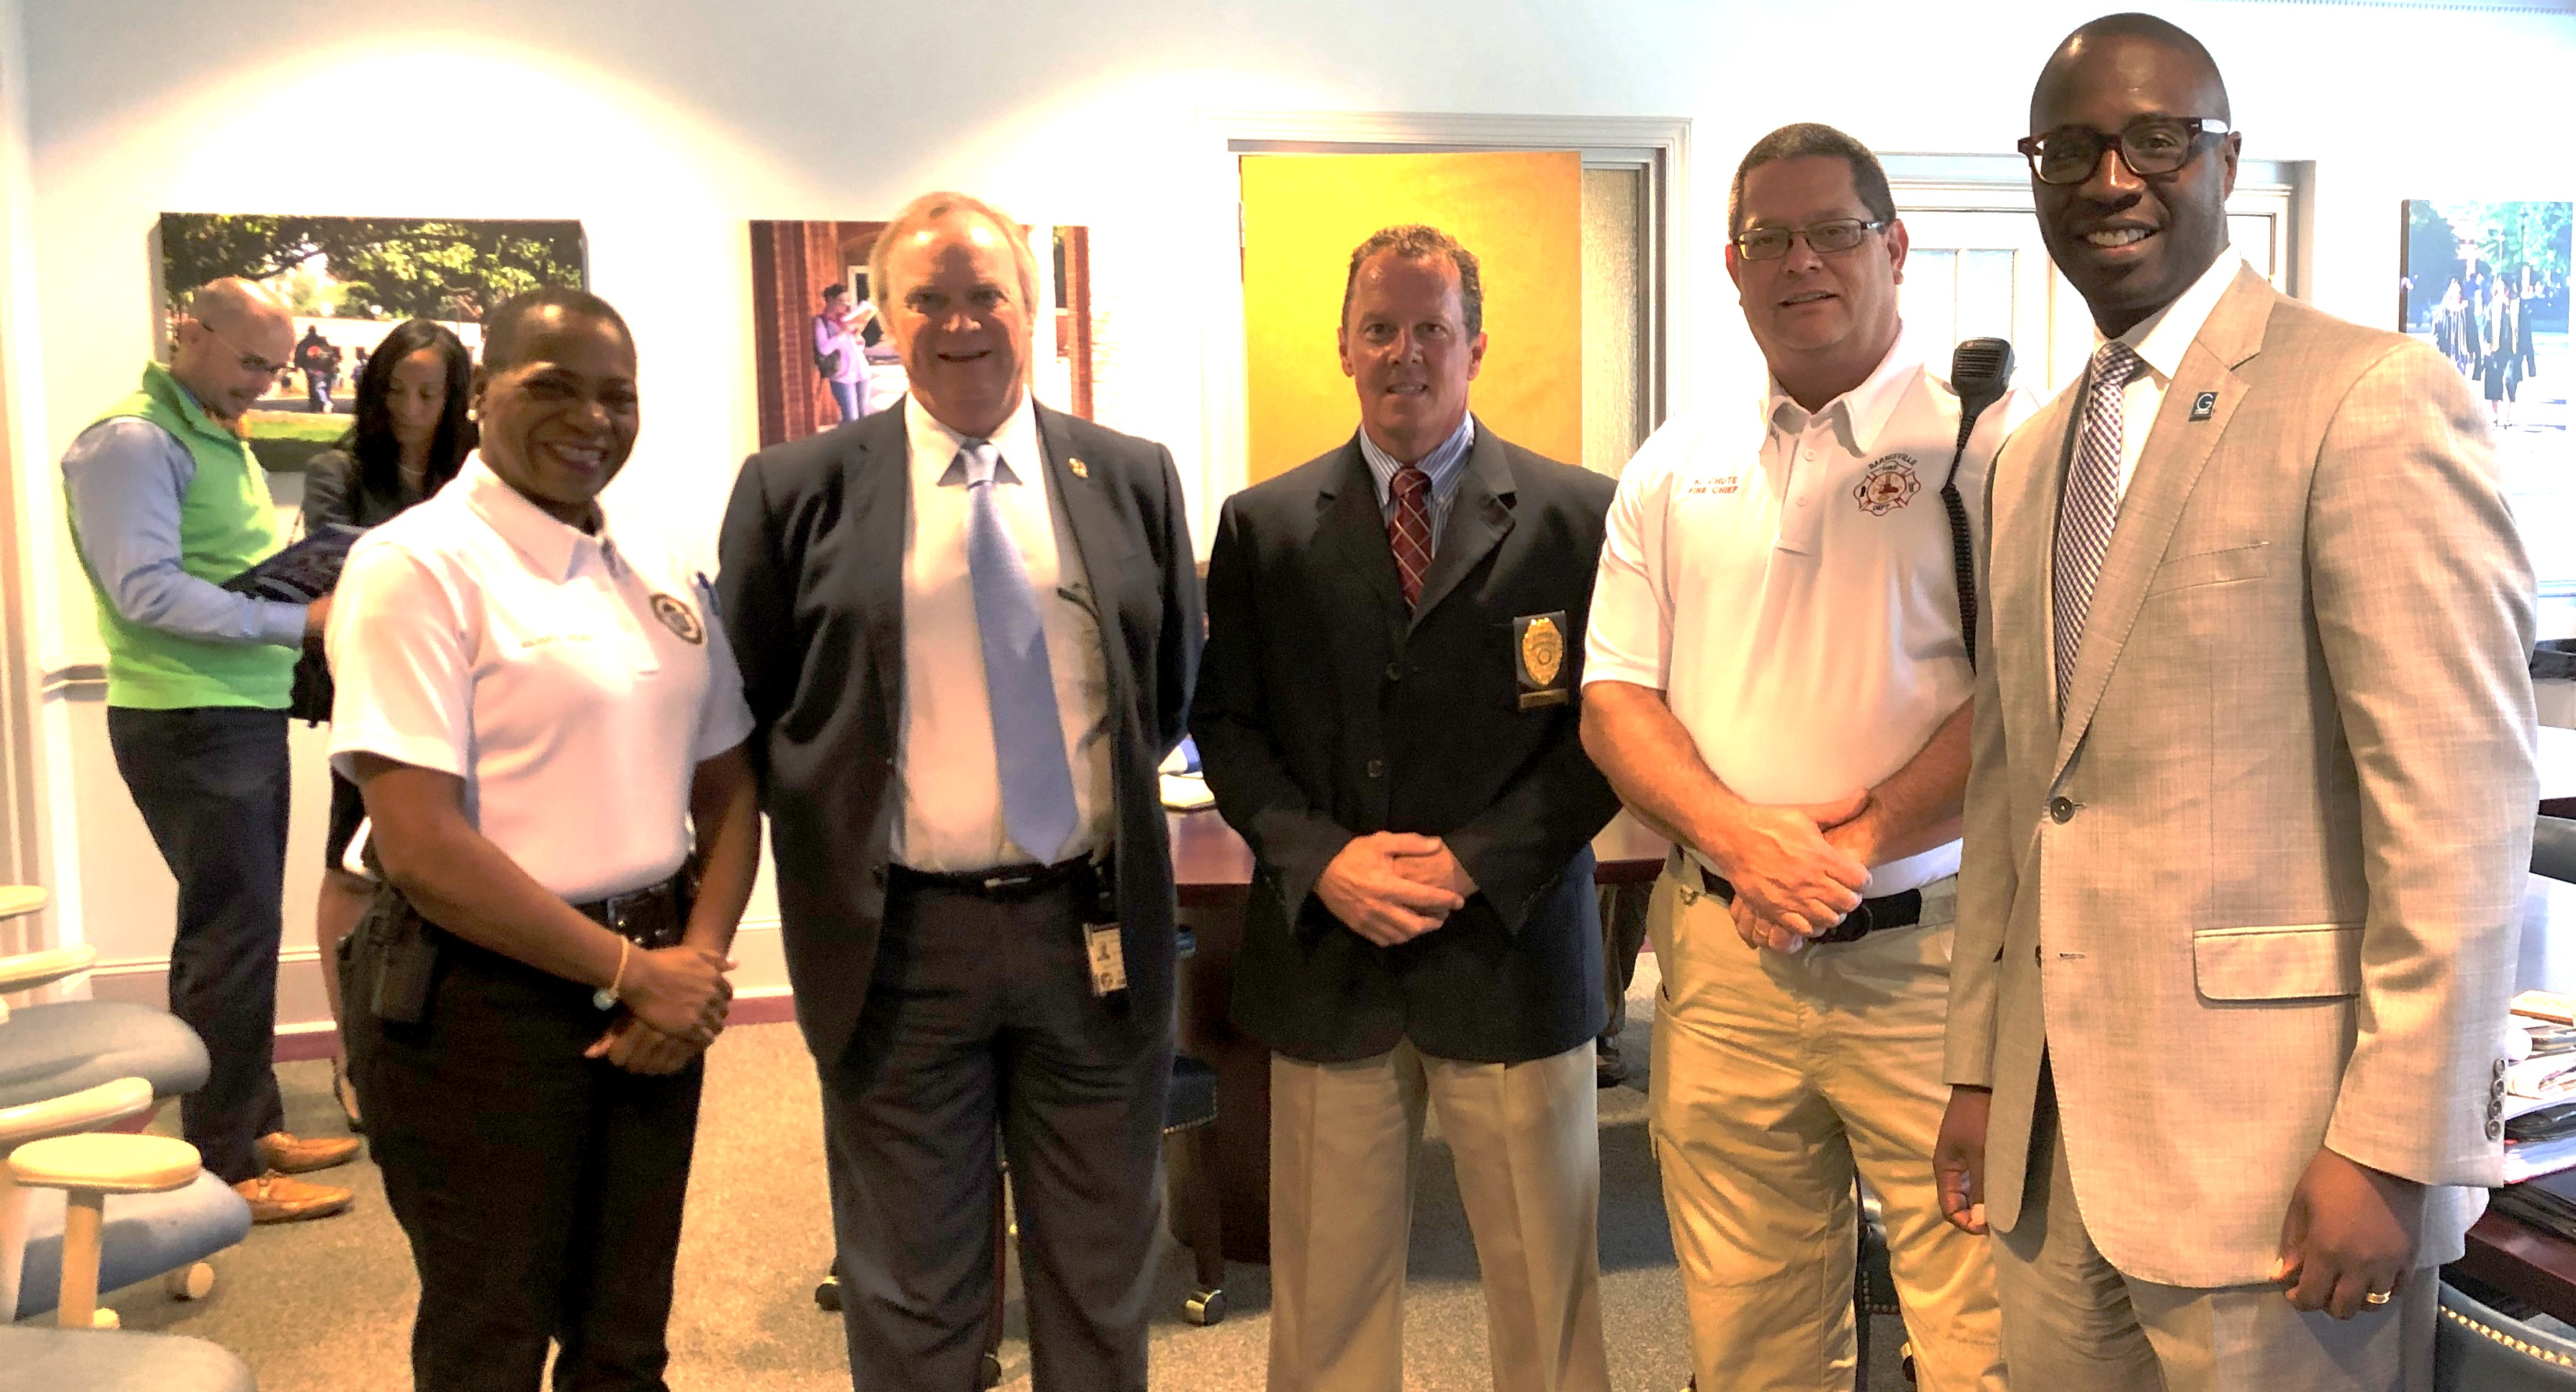 Gordon Administrators Participate in Annual Campus Safety ...